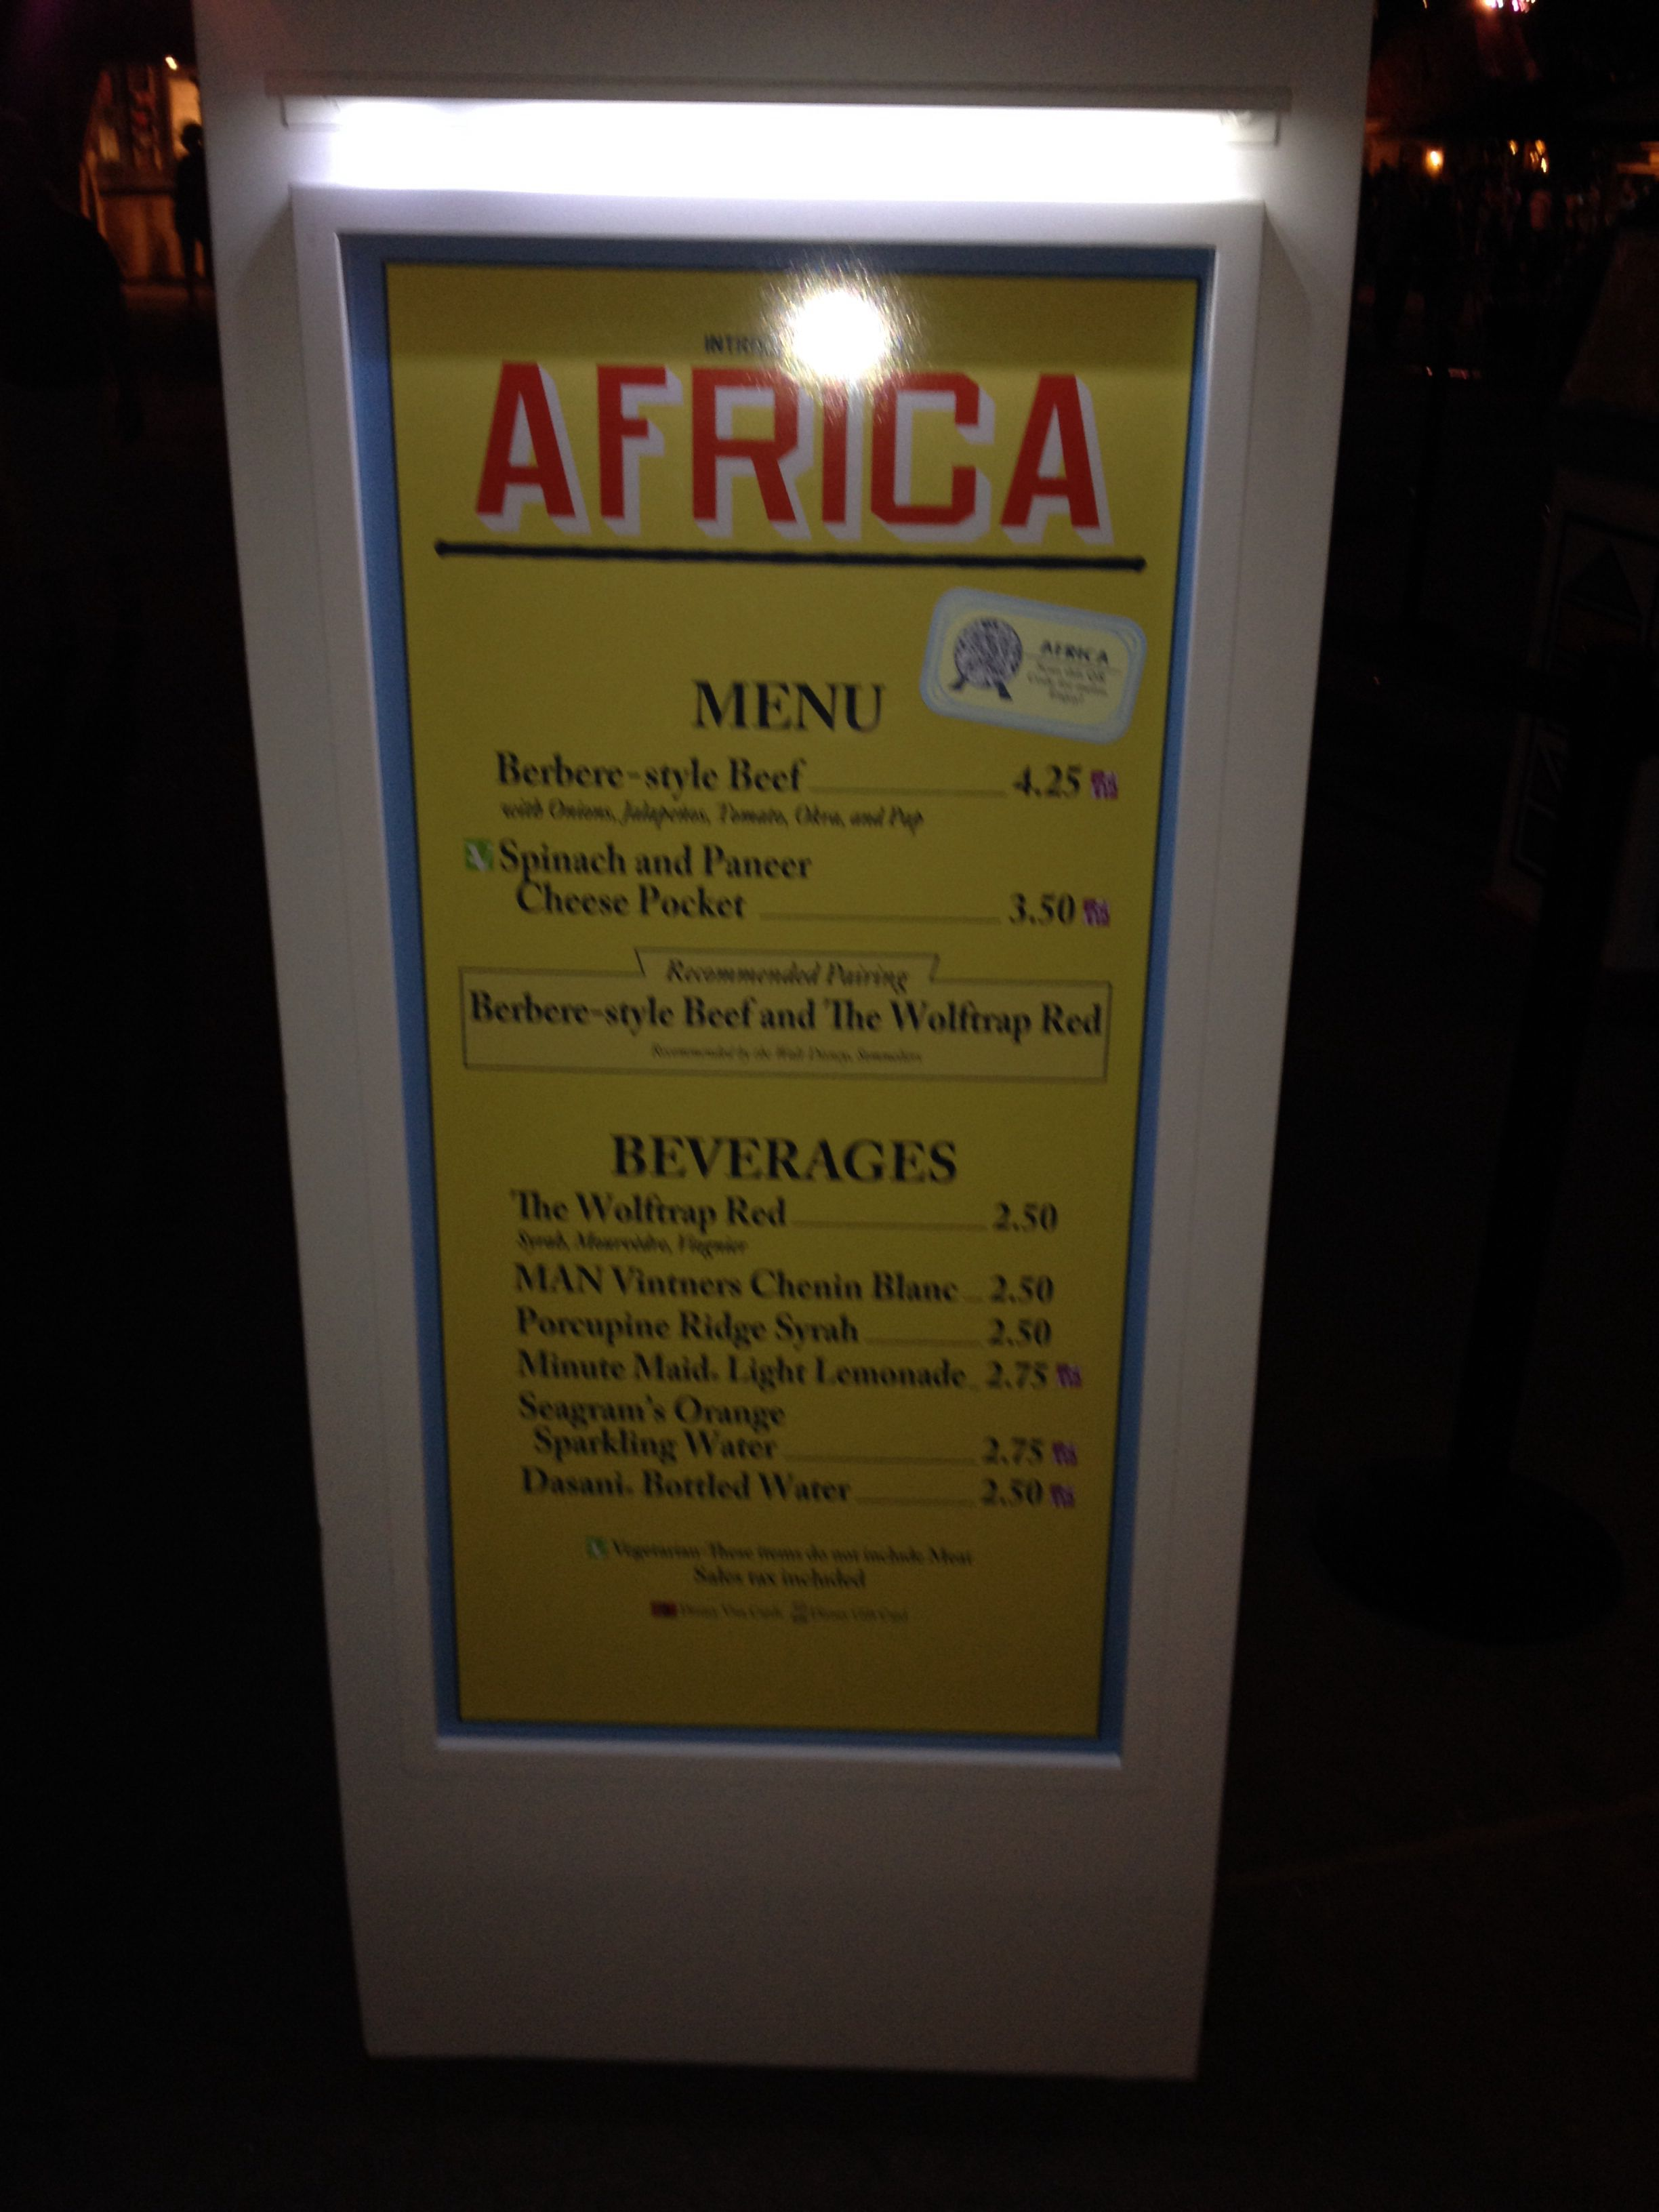 Africa section of Food & Wine at EPCOT.